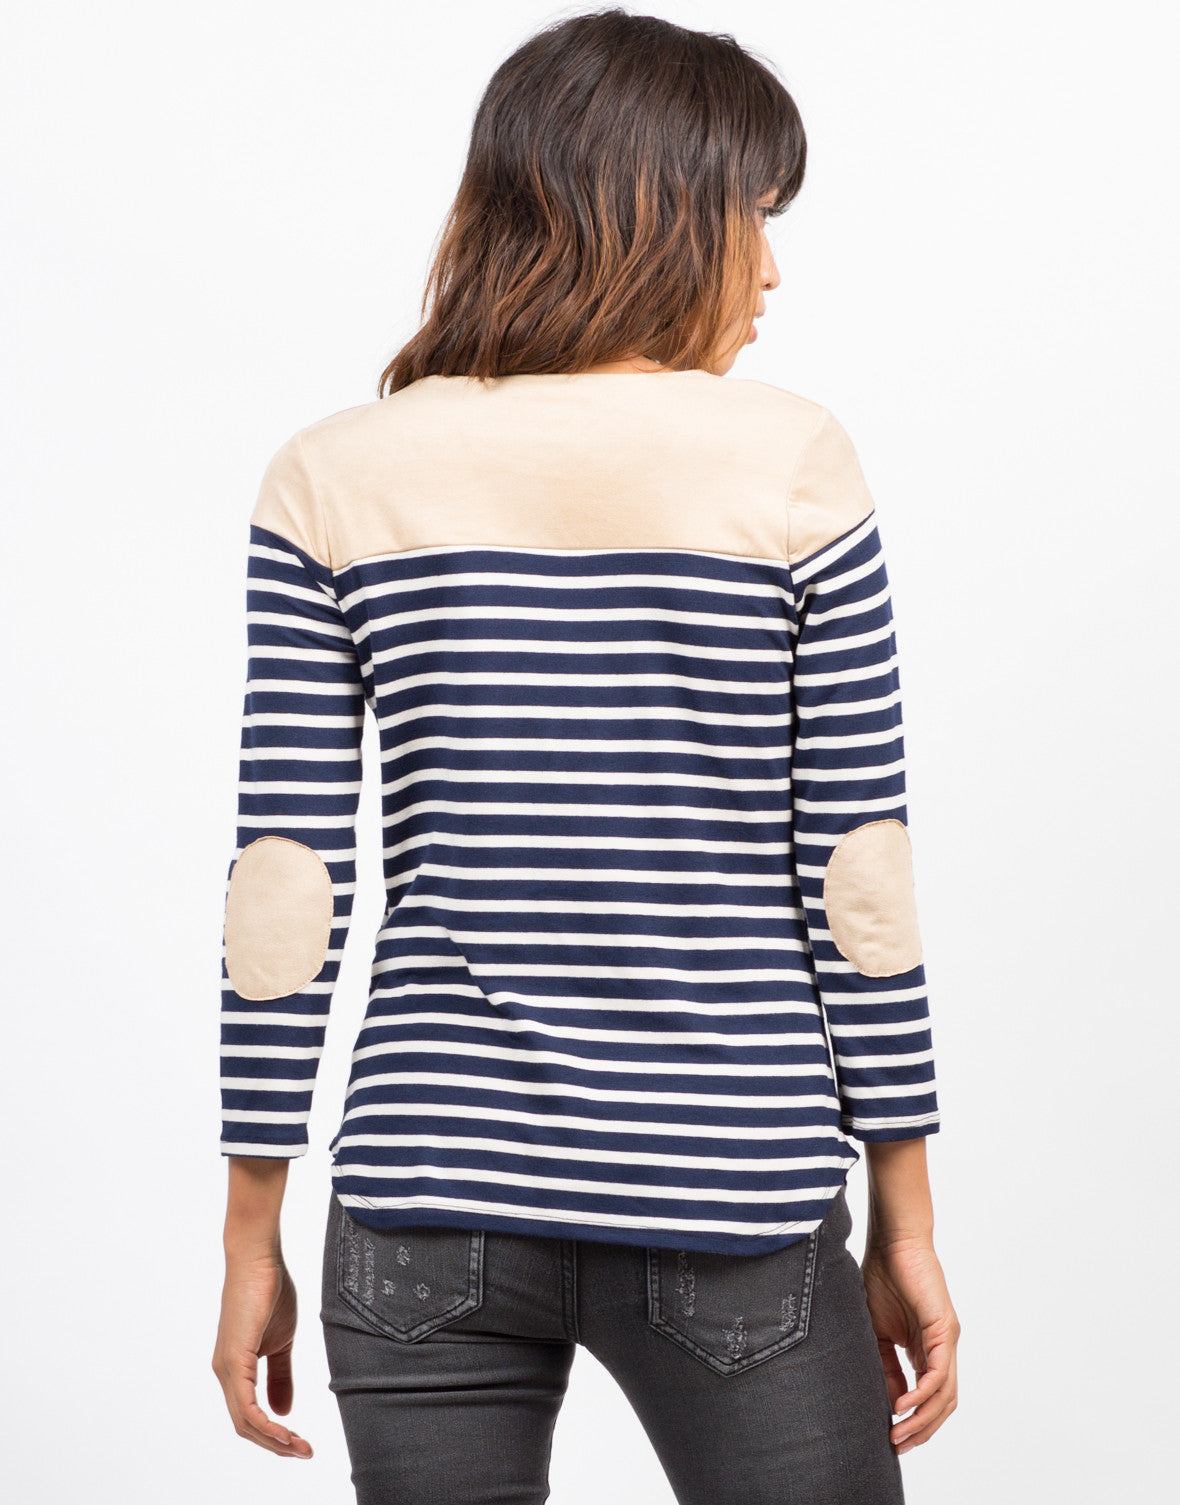 Back View of Striped Elbow Patch Top